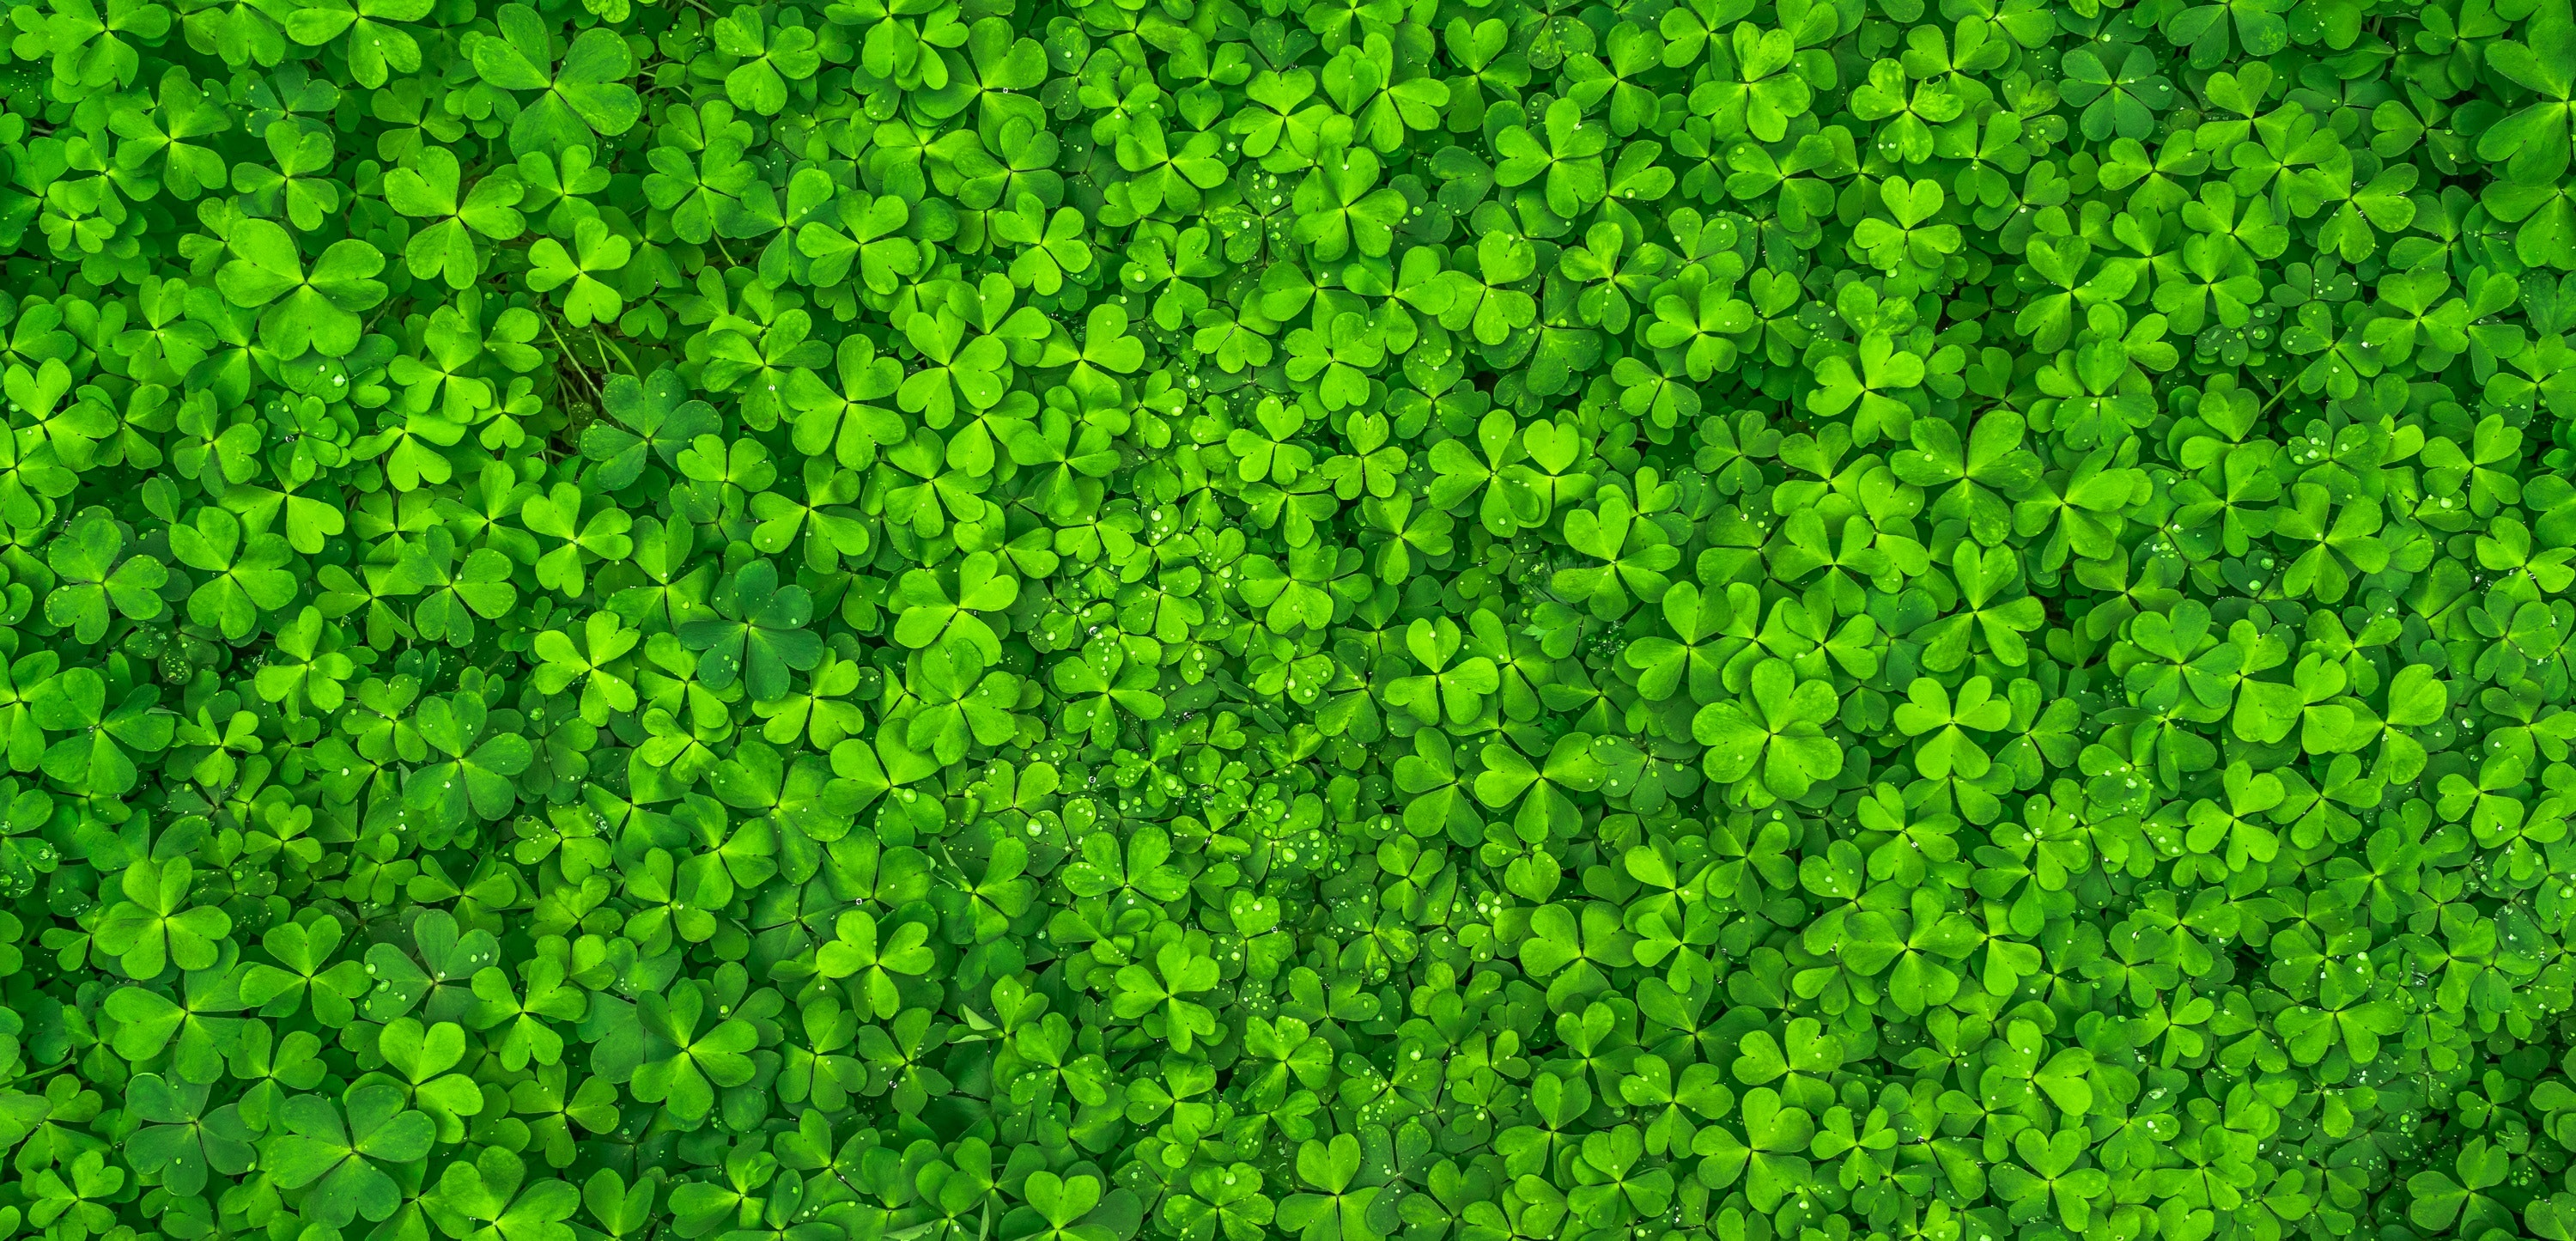 St. Patrick's Day Wallpaper Background